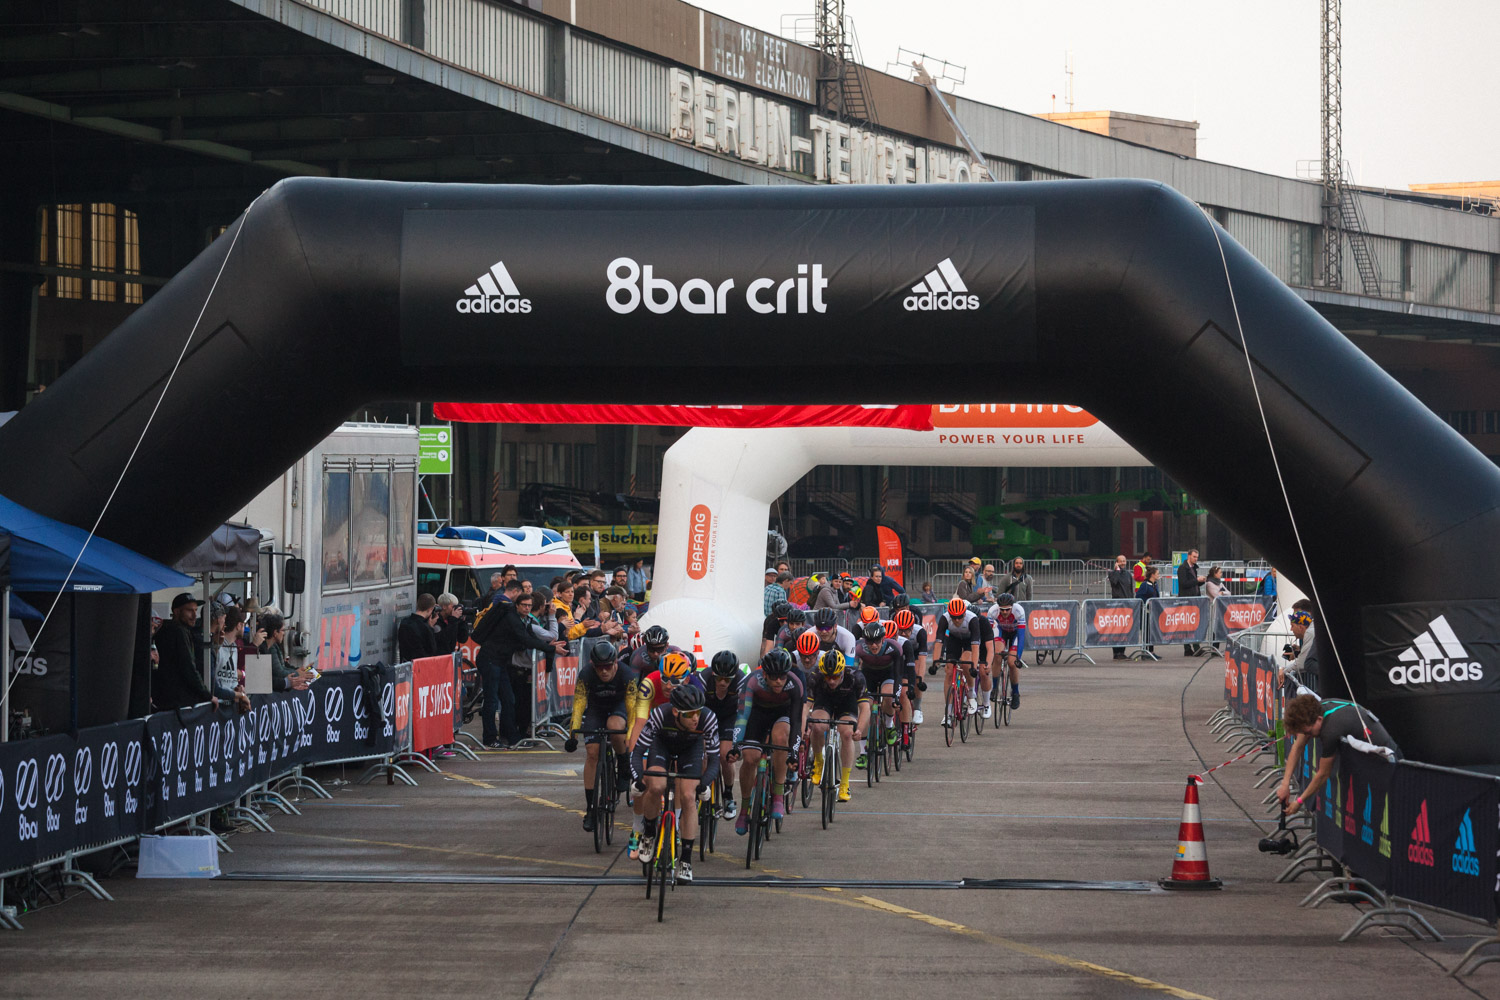 8barcrit 2018 fixed gear race 22 2 - Fast, Faster, 8bar crit 2018 - the race review!